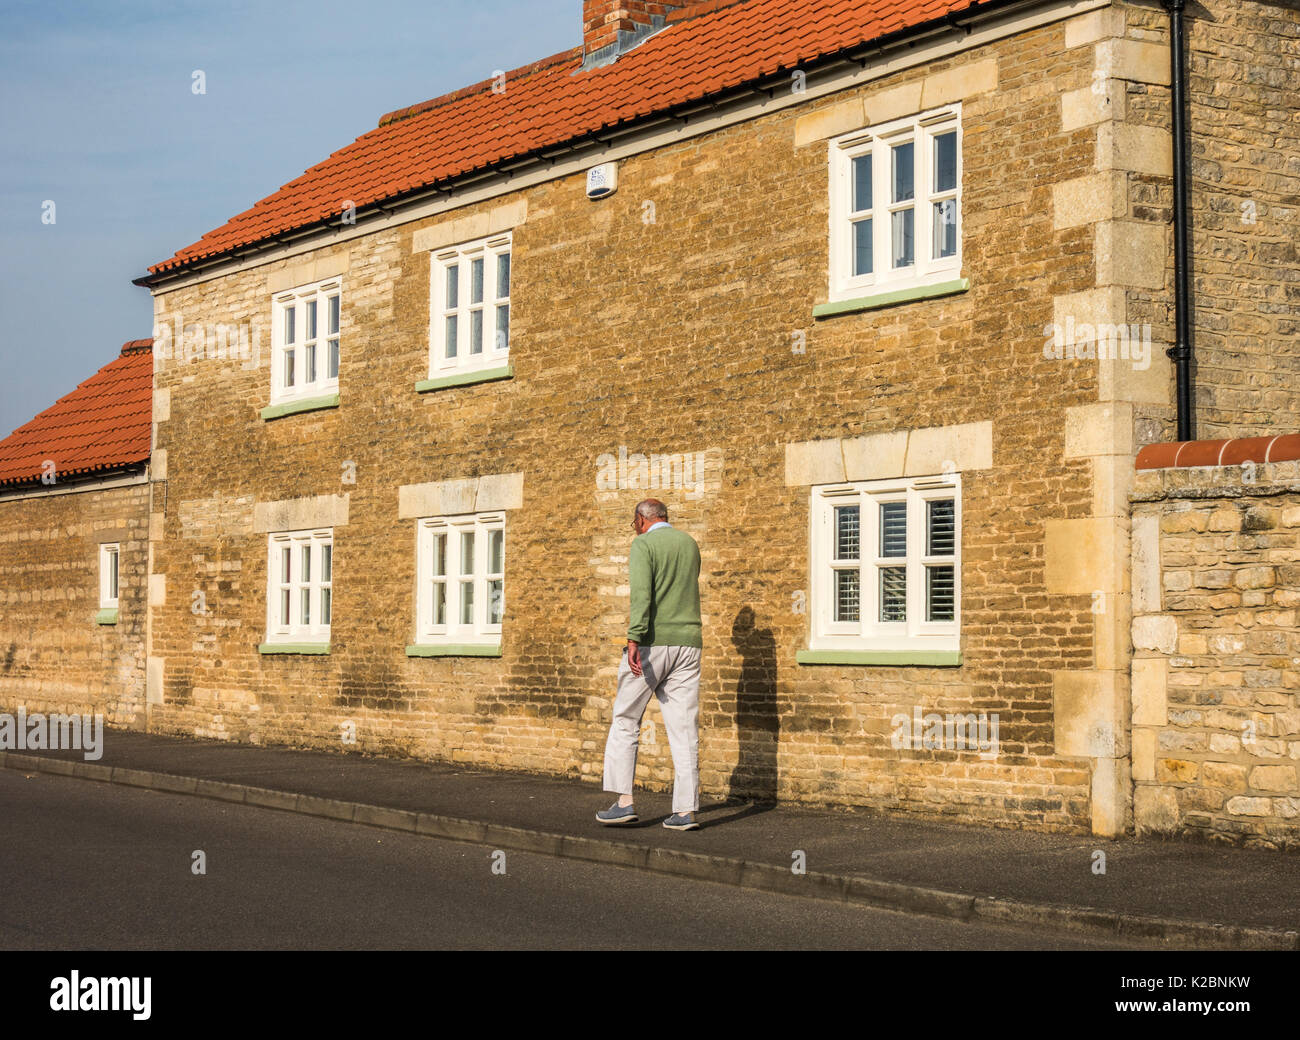 Old / senior man walking: Fit and trim elderly man taking brisk, daily walk in the warm, early morning sunshine, past an old stone house. England, UK. - Stock Image